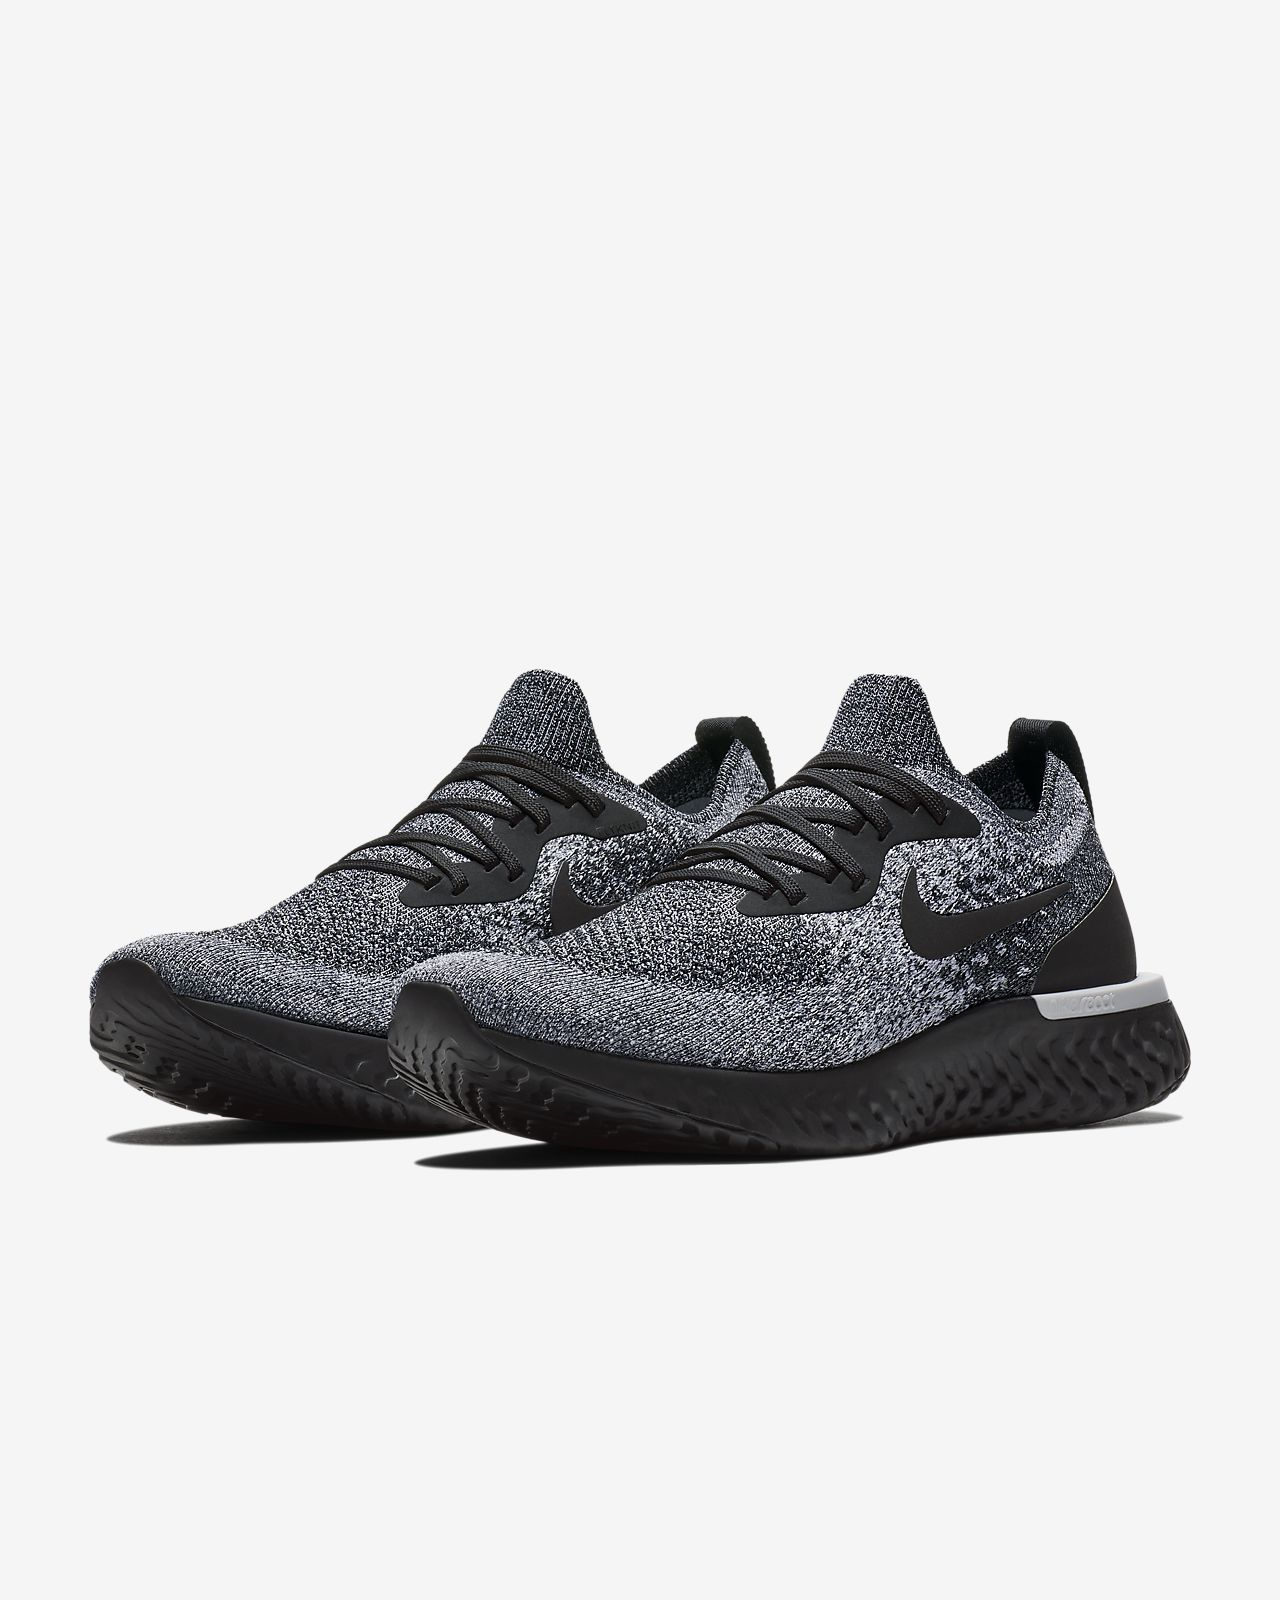 new product b6ac9 c1747 Men s Running Shoe. Nike Epic React Flyknit